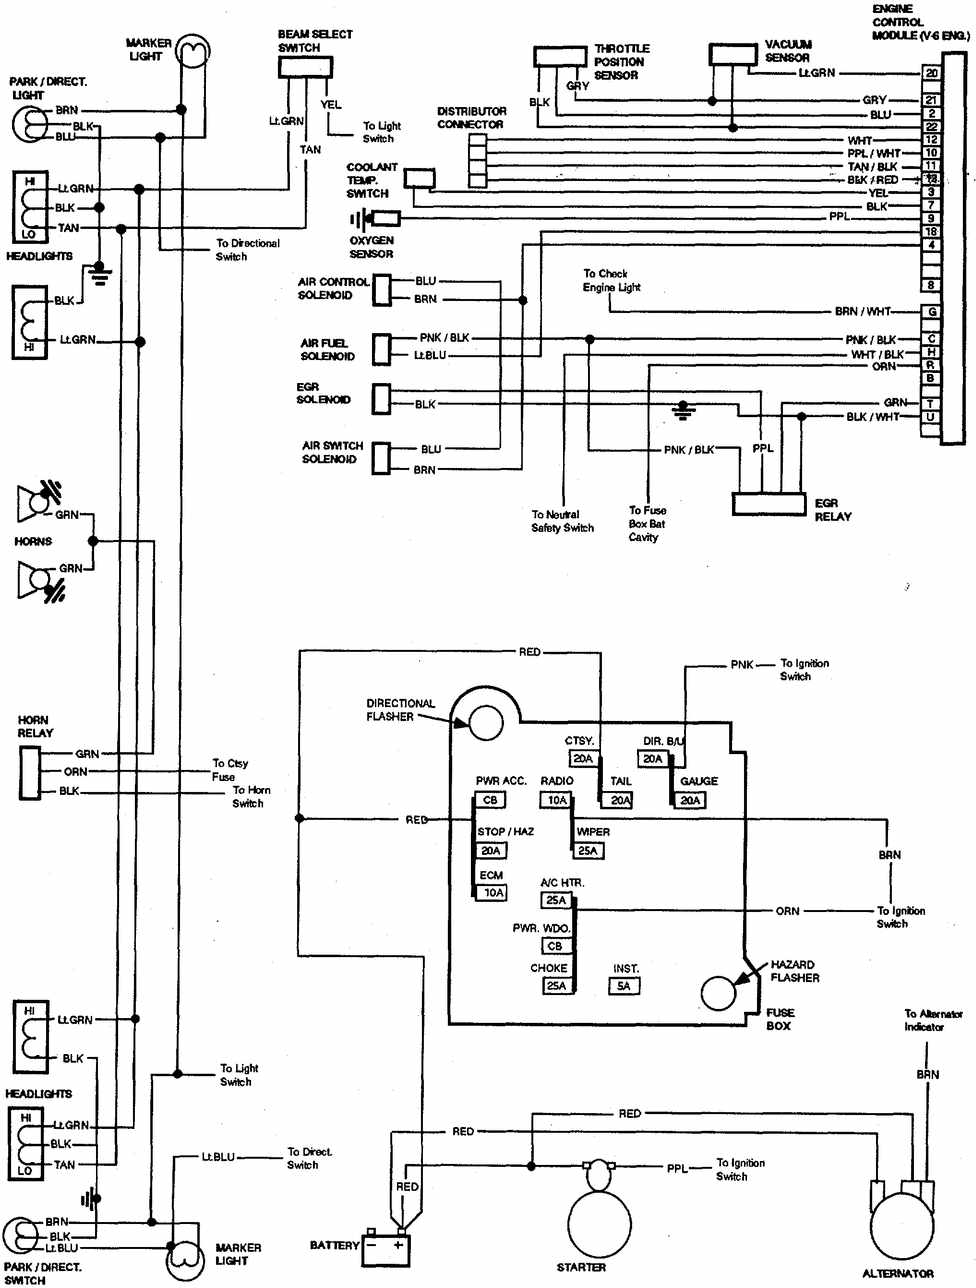 1965 chevrolet wiring diagram schematic harness